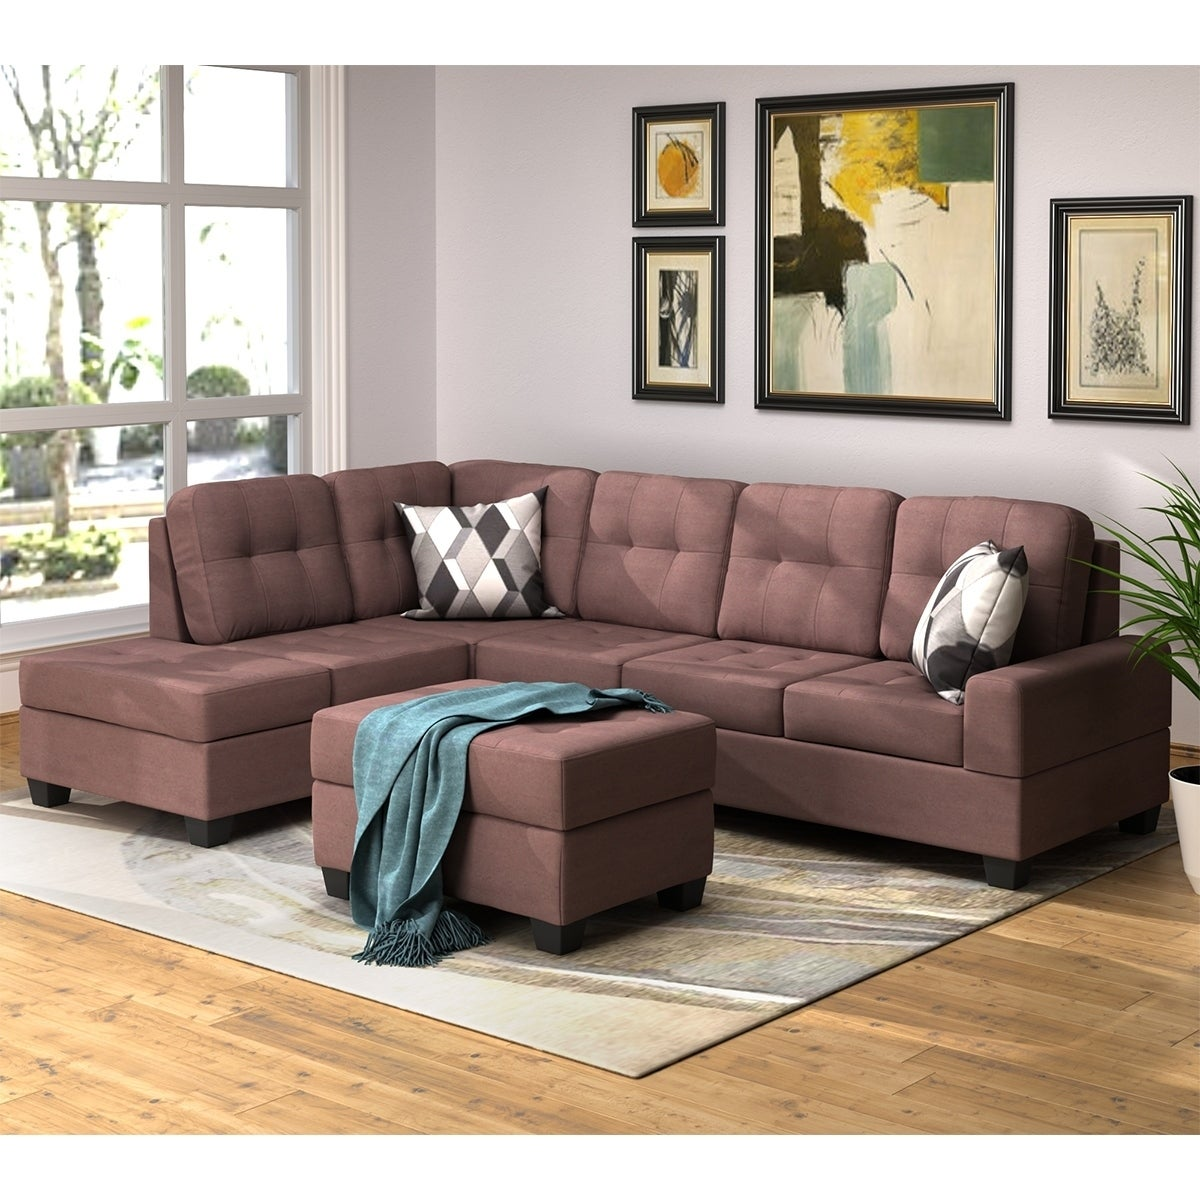 Copper Grove Sevan 3 Piece Microfiber Sofa Sectional Set With Reversible Chaise Lounge Storage Ottoman